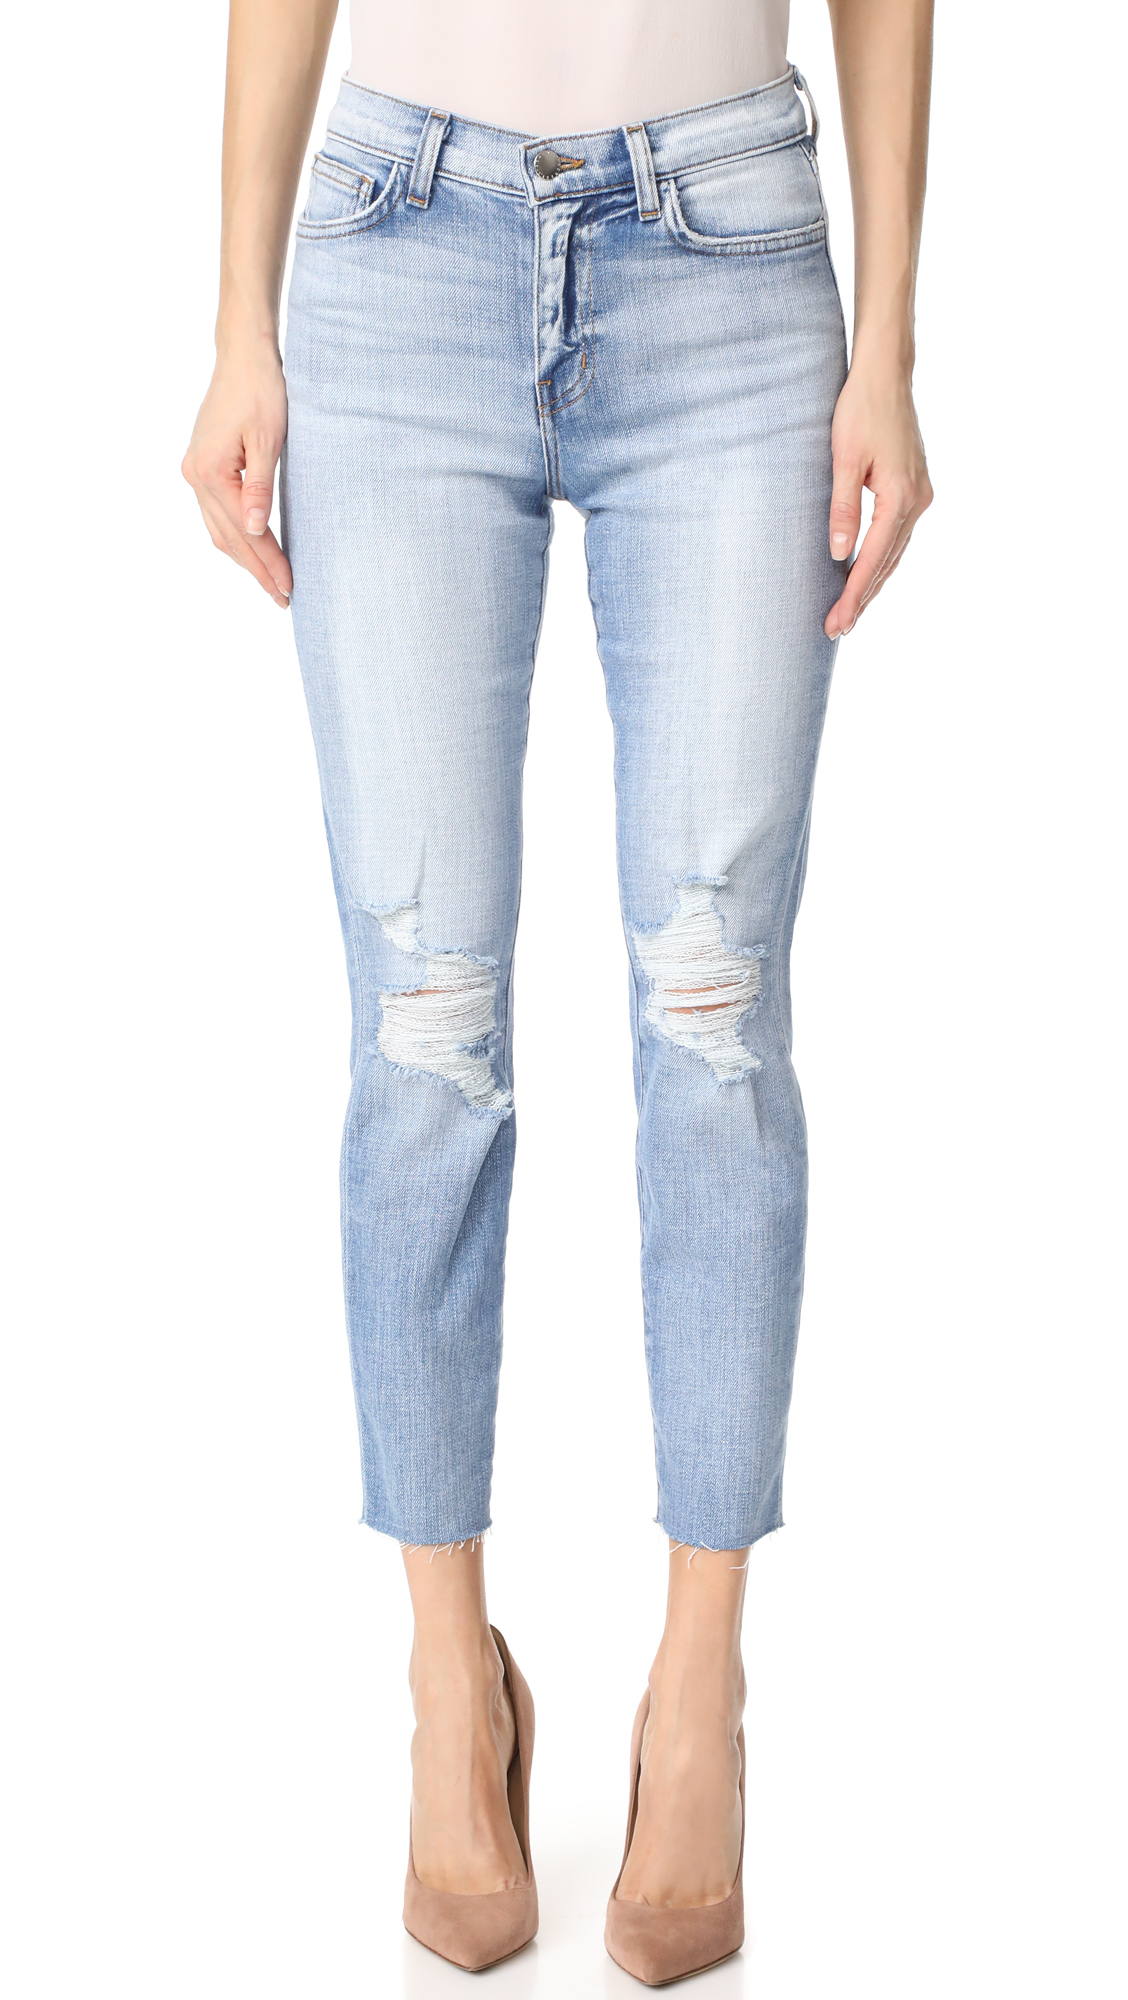 L'AGENCE El Matador French Slim Destructed Raw Hem Jeans